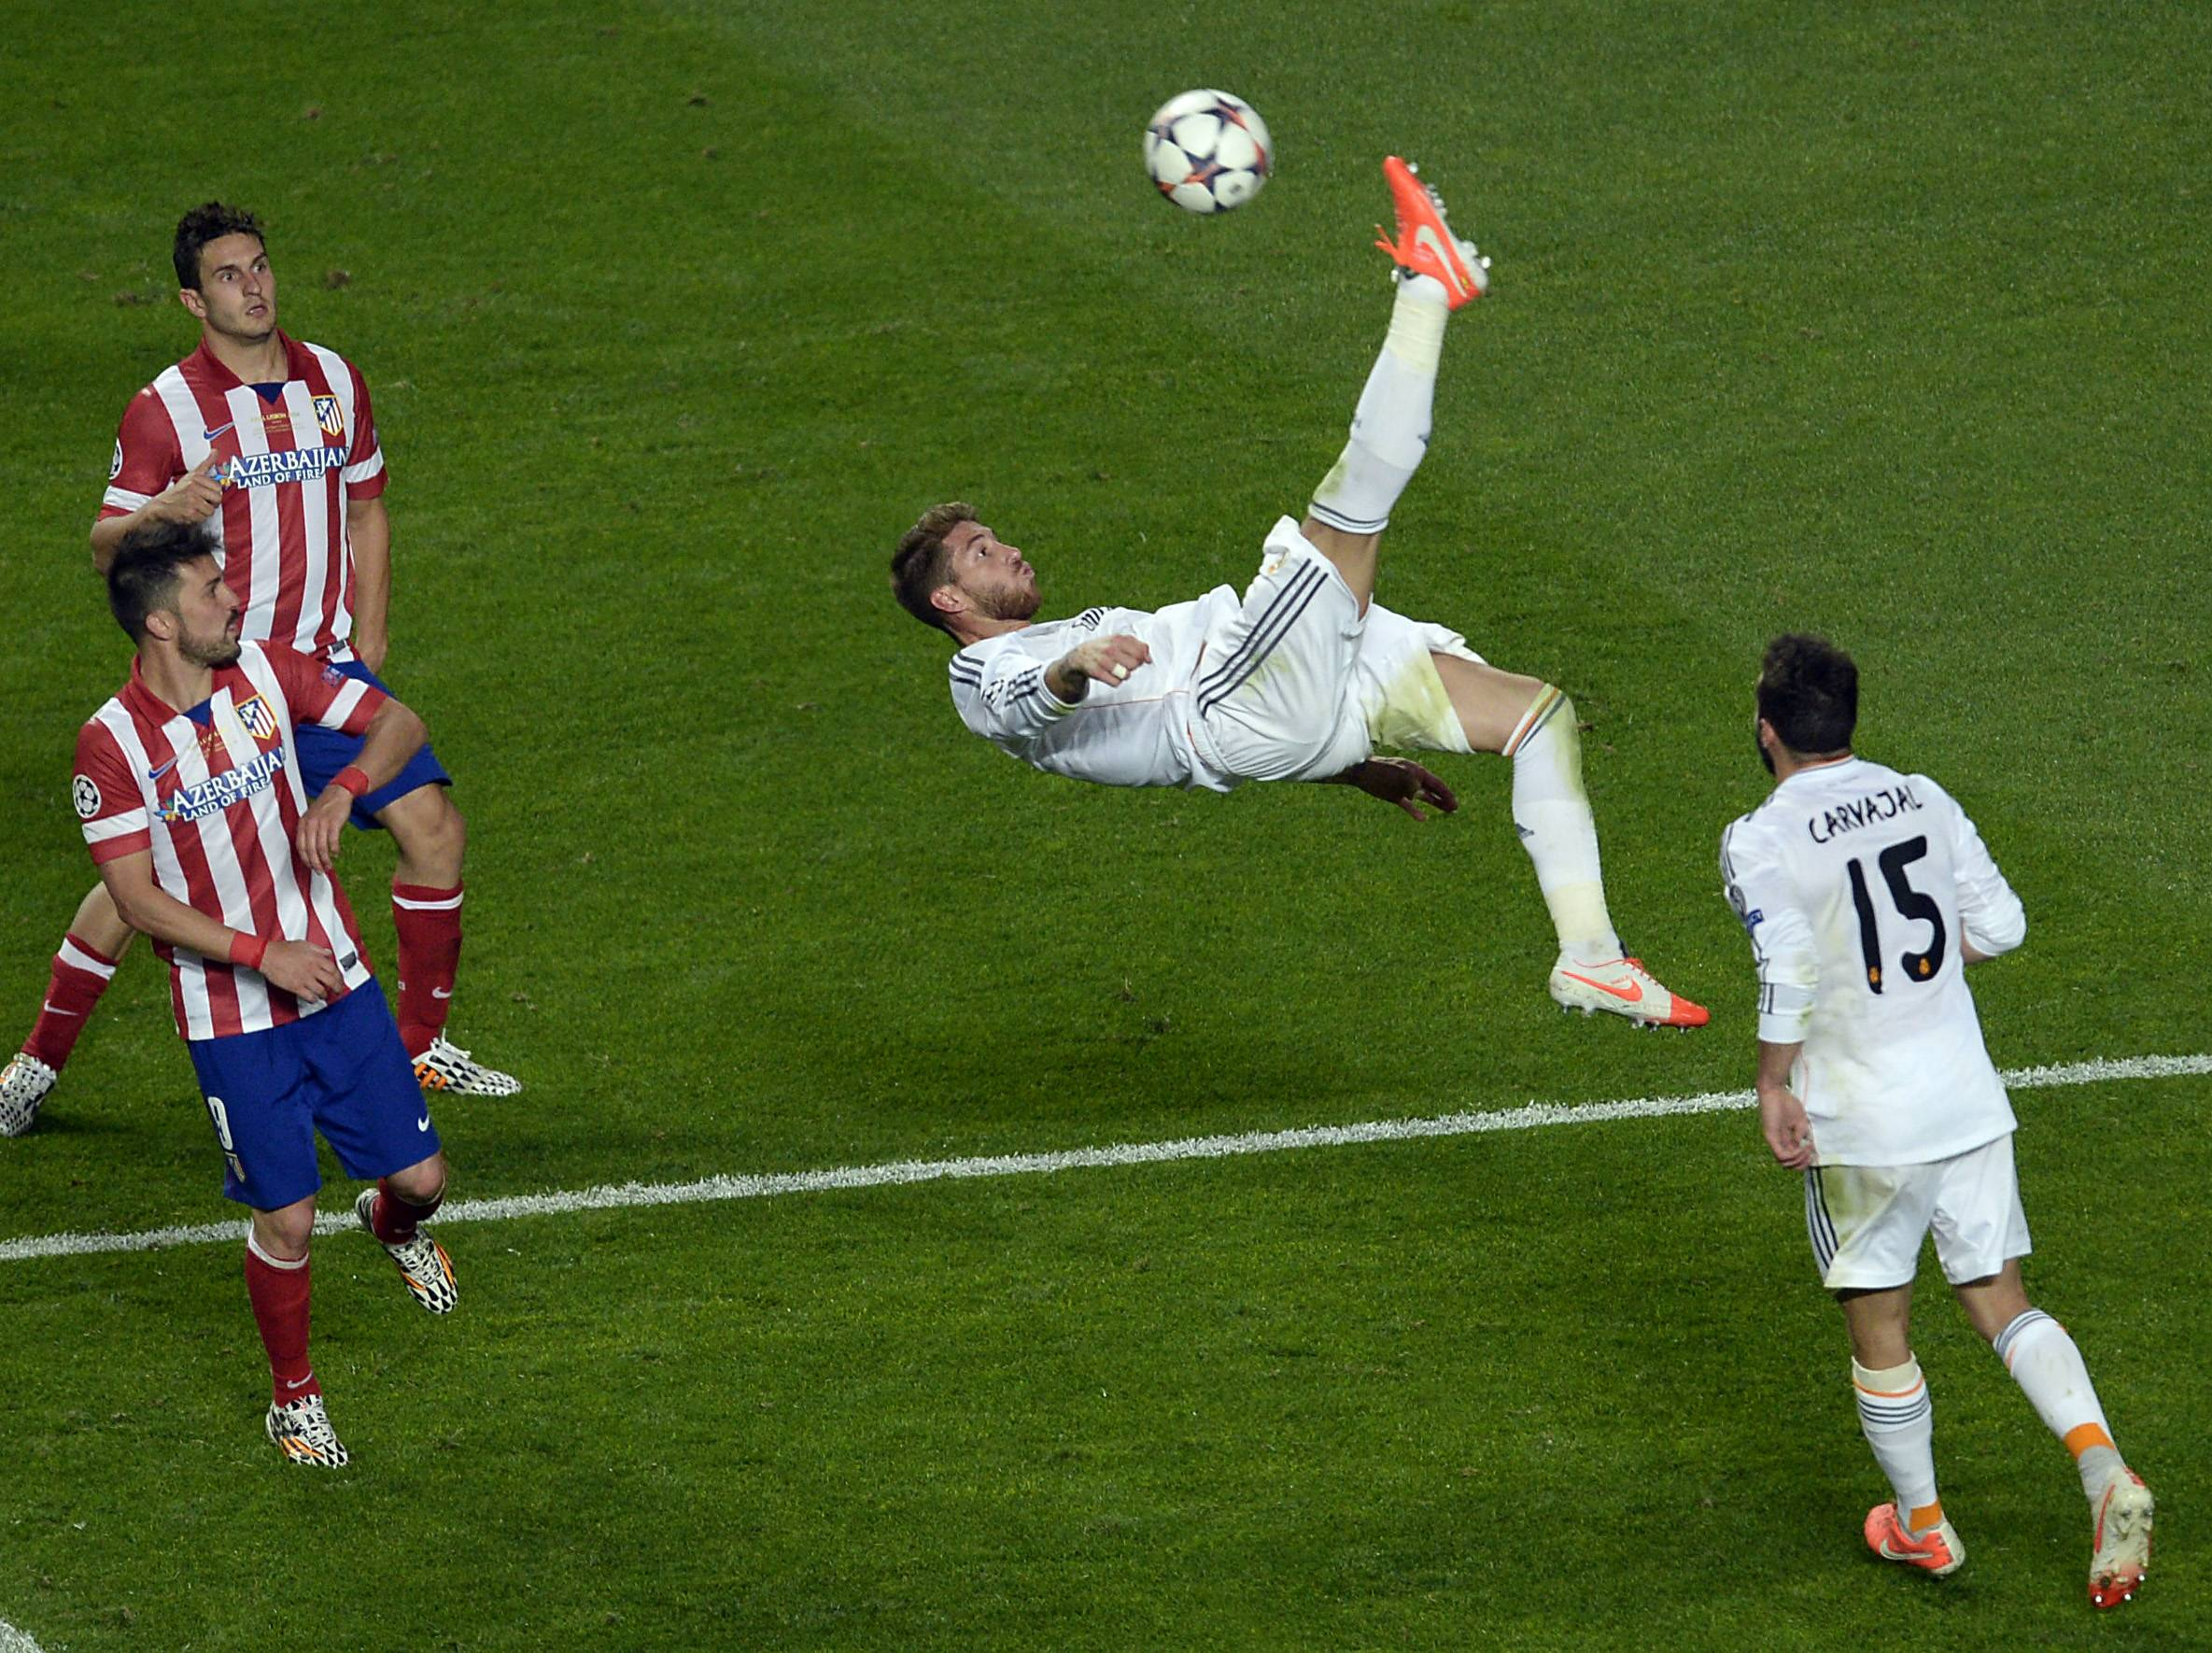 Real's Sergio Ramos kicks the ball during the Champions League final soccer match between Atletico Madrid and Real Madrid in Lisbon, Portugal, Saturday, May 24, 2014.